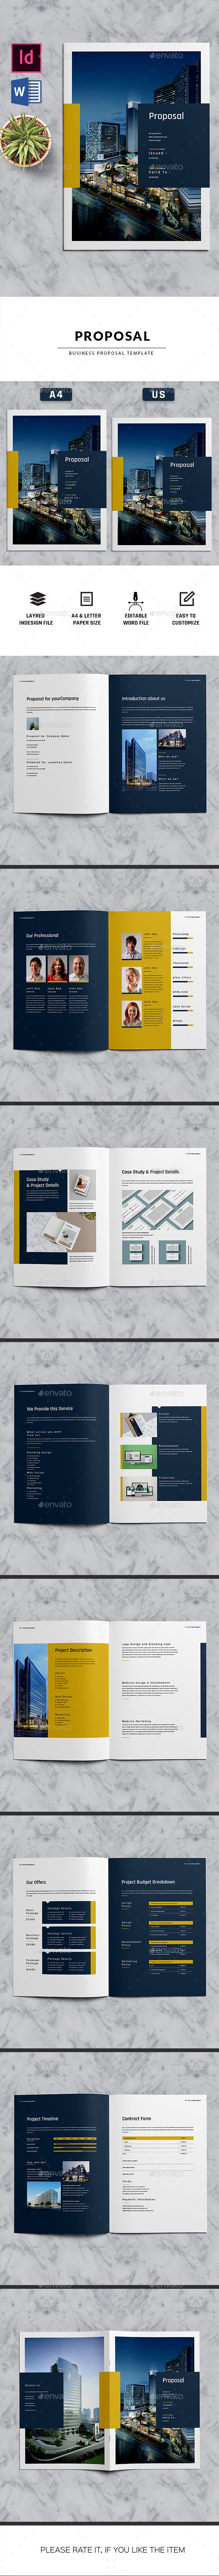 how to create a proposal template in word%0A Proposal Brochure Template InDesign INDD  MS Word     Pages A   u     Letter  Size